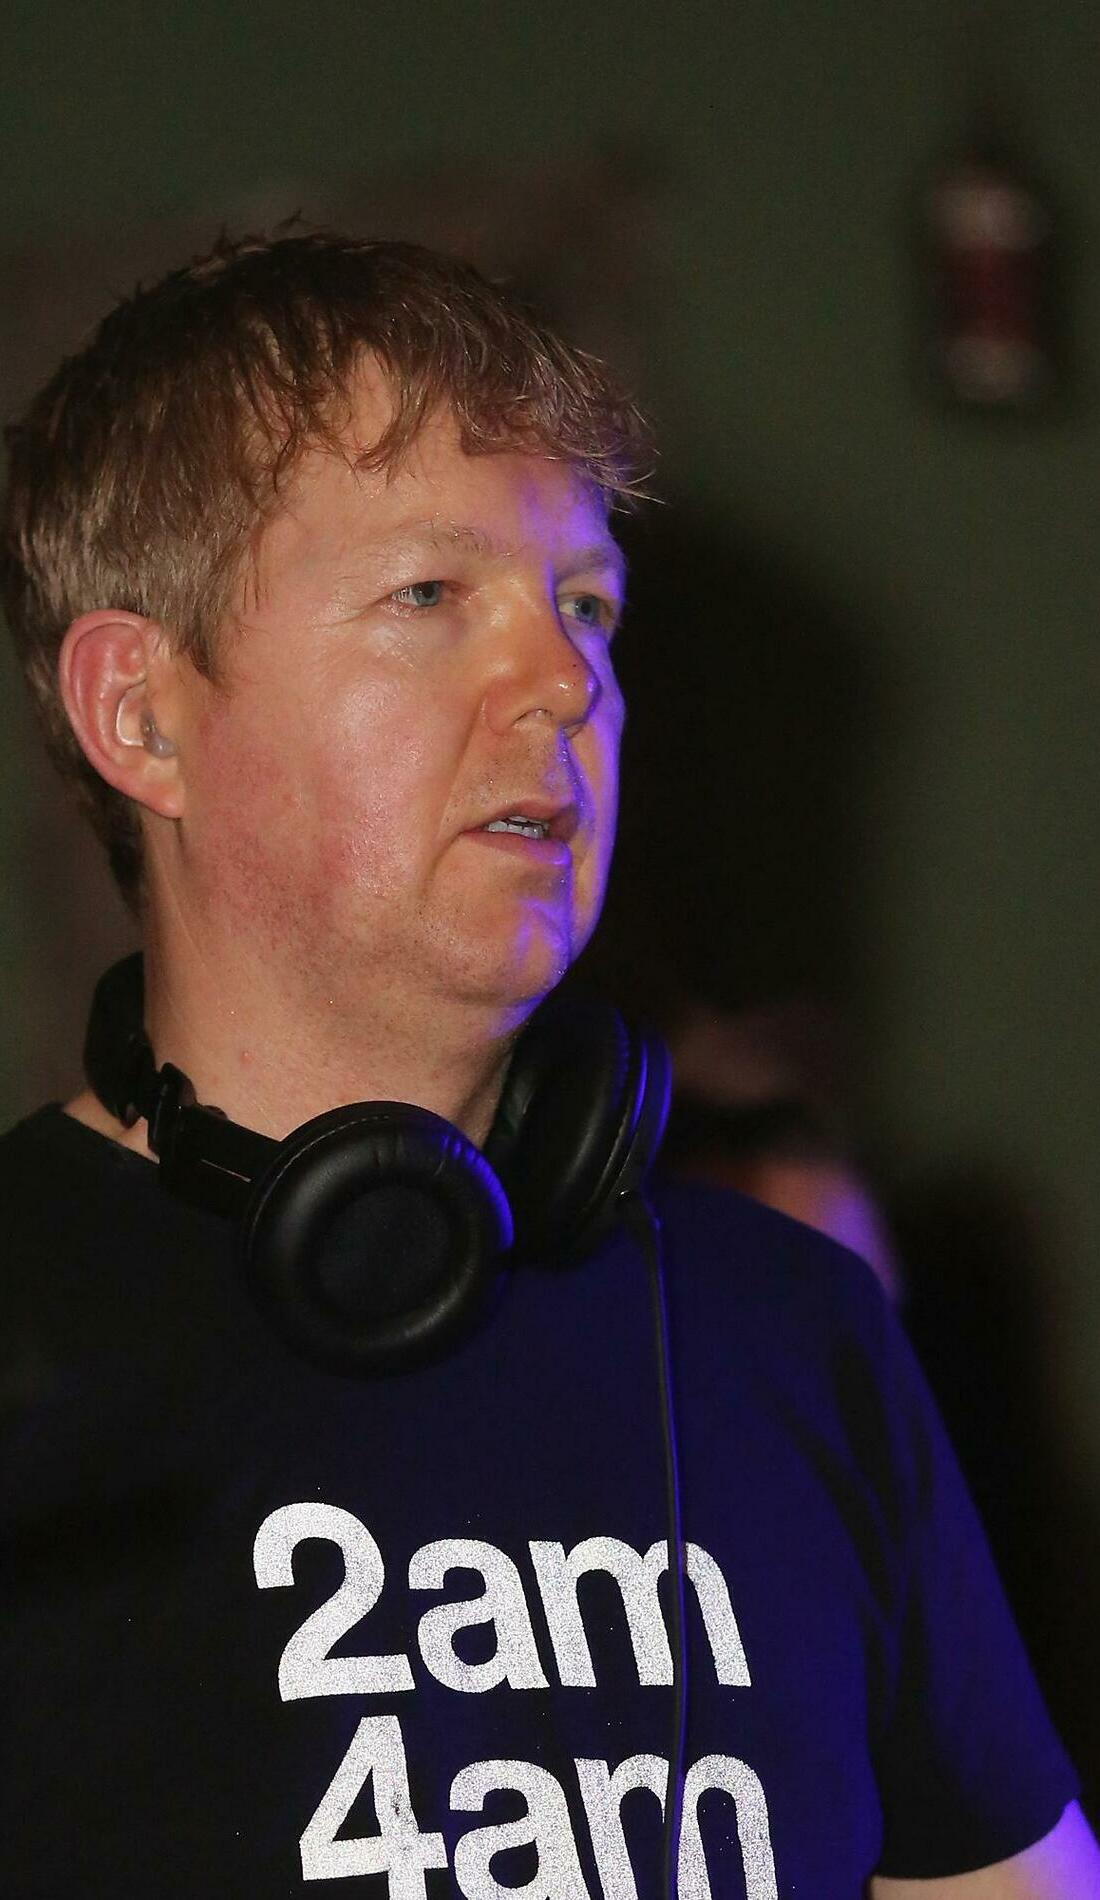 A John Digweed live event